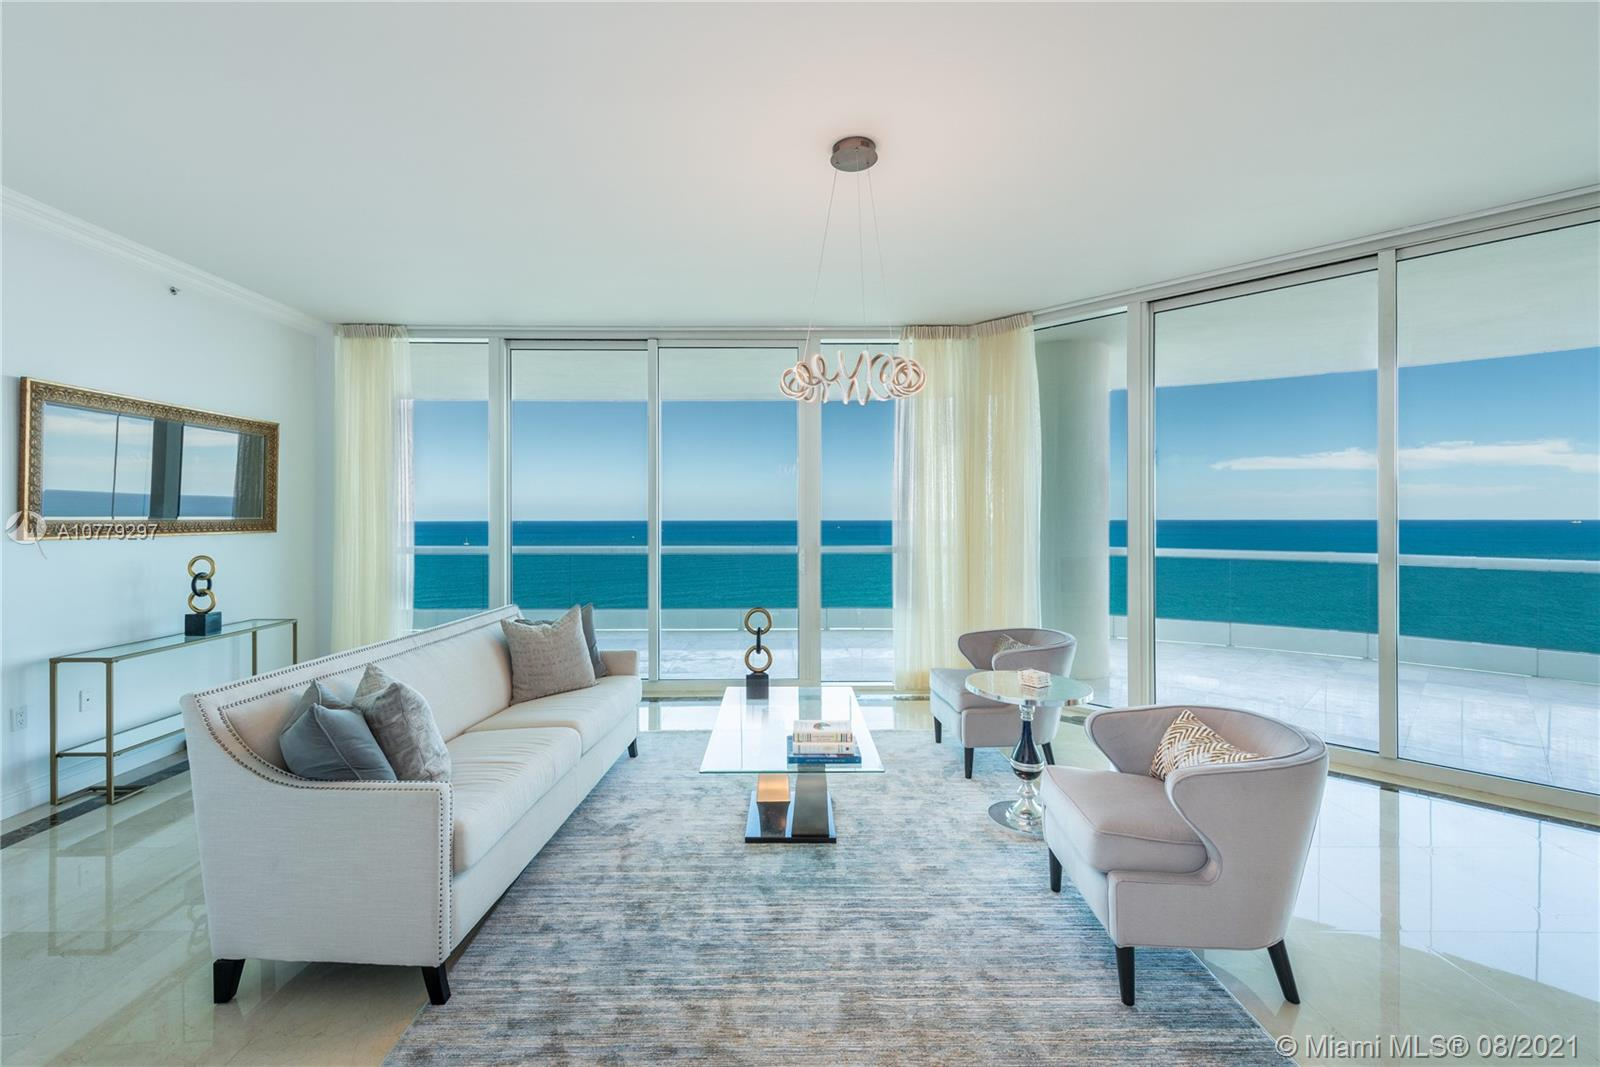 Experience South Florida's oceanfront living at Turnberry Ocean Colony in Sunny Isles Beach – a lavish residential enclave situated on approx. 650 feet of pristine beaches. Residence 2104 is a luxury corner unit with 10-foot ceilings & East/South/West exposure offering panoramic ocean & intracoastal views. Private elevator & entry foyer are leading to the expansive living areas which are enclosed with an oversized wrap-around terrace with a BBQ. Direct oceanfront chef's kitchen with a top-of-the-line appliances & breakfast area, oceanfront master suite with 2 marble baths & massive walk-in closet, 2 guest bedrooms with en-suite baths with intracoastal views, & a fourth bedroom with ocean views. Five-star amenities, 2 restaurants, nearby world-famous Bal Harbour Shops & Aventura mall.